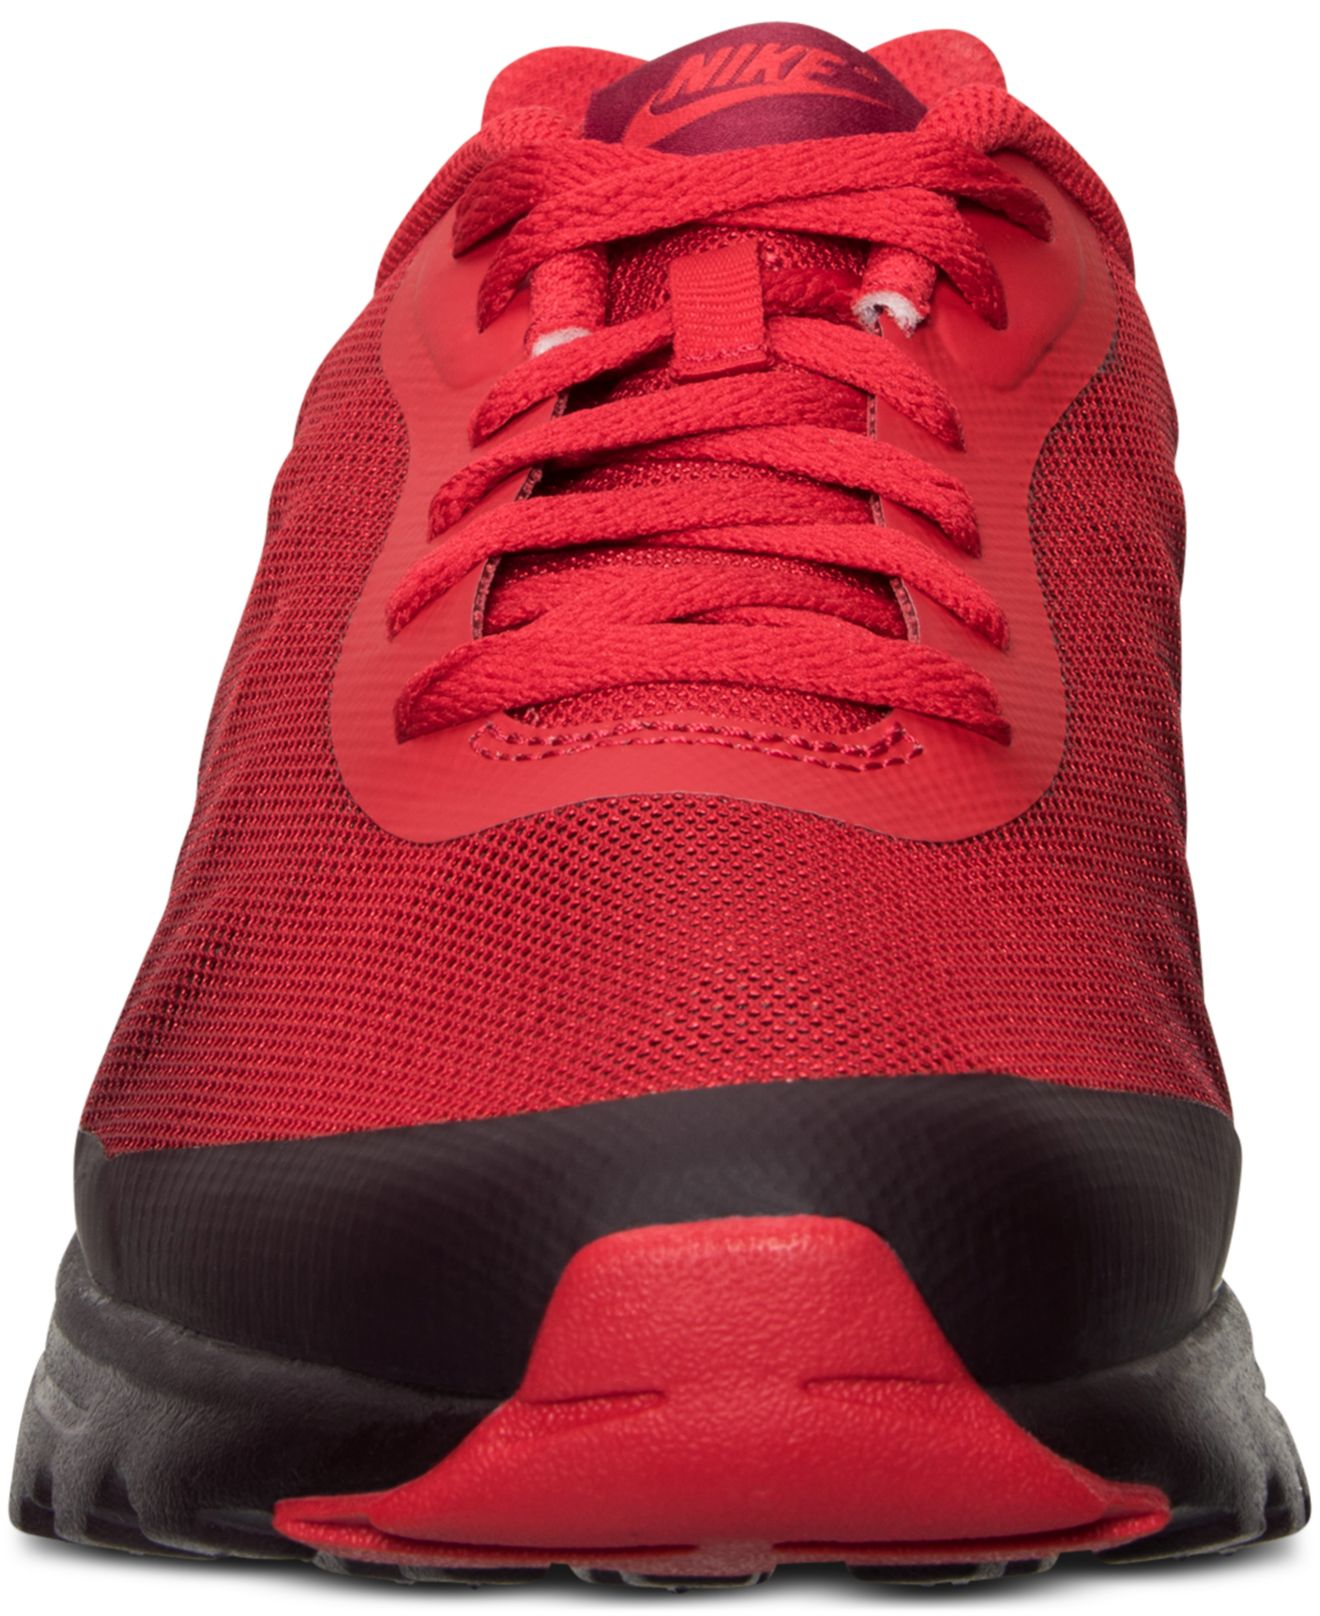 free shipping 05b02 bf936 ... closeout lyst nike mens air max invigor print running sneakers from  3154a bc842